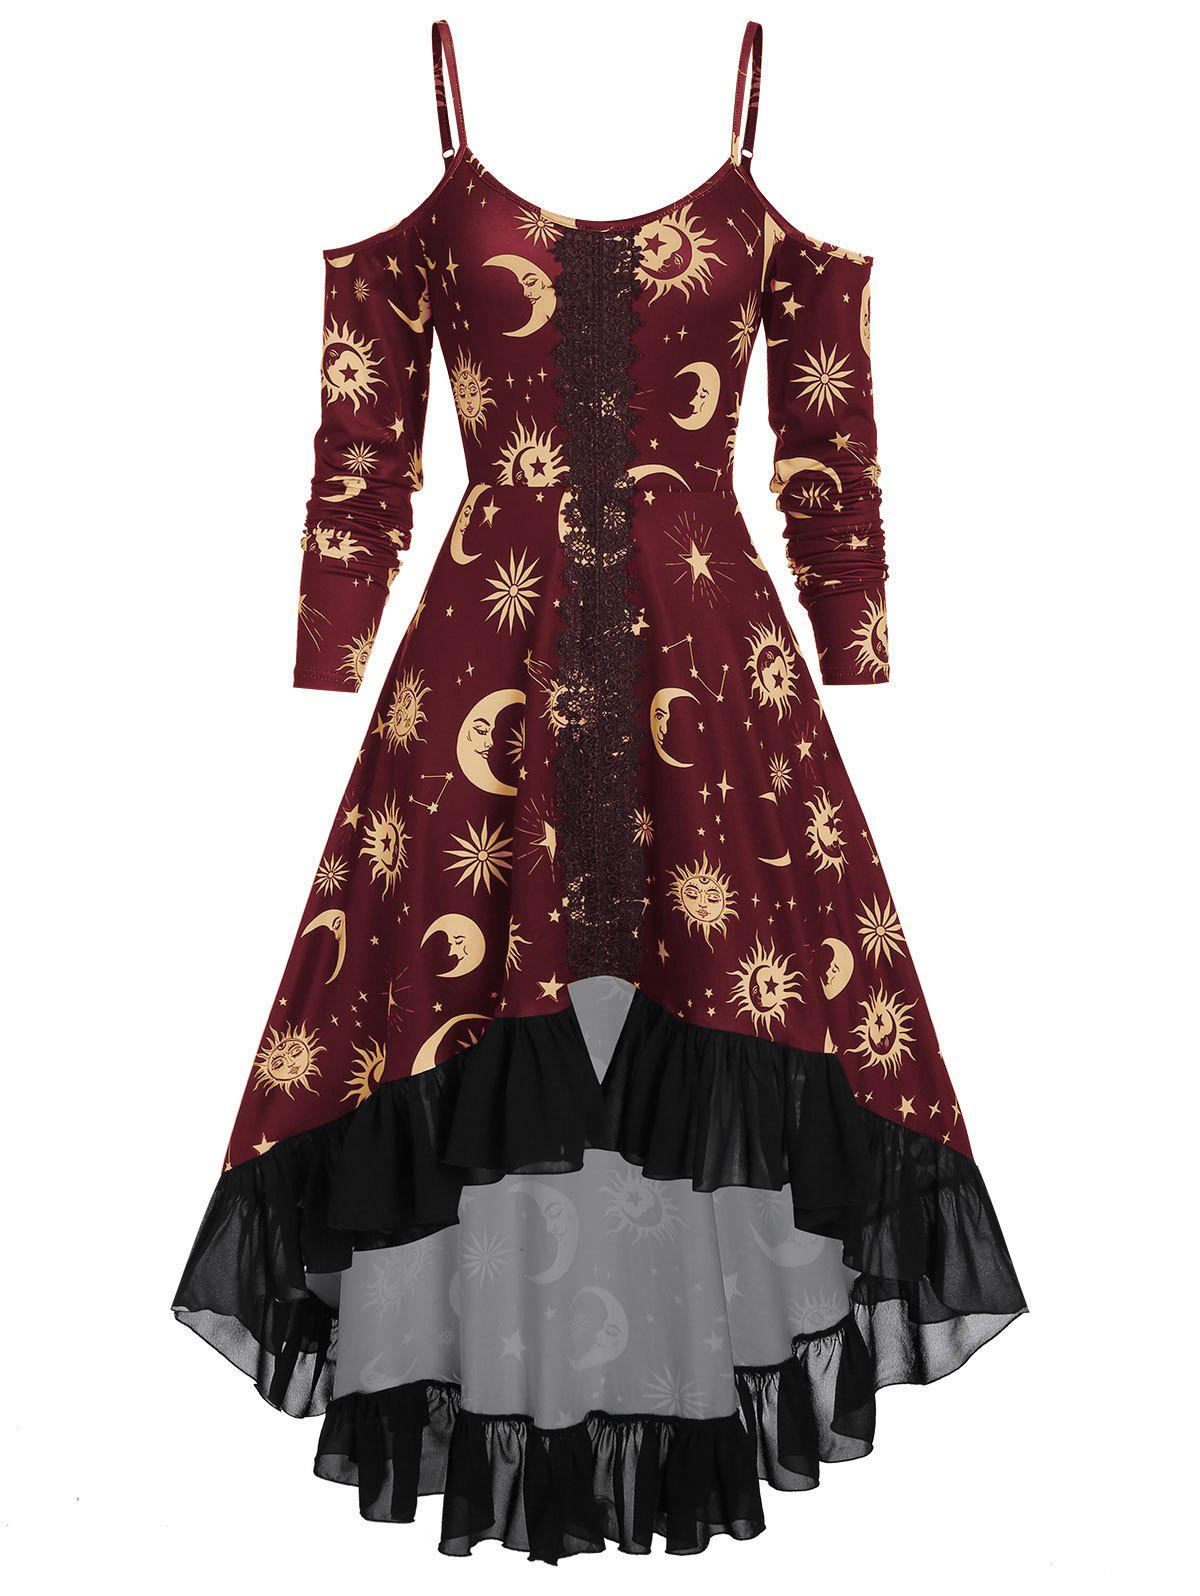 Fashion Spaghetti Strap Open Shoulder Sun and Moon Print Gothic Dress